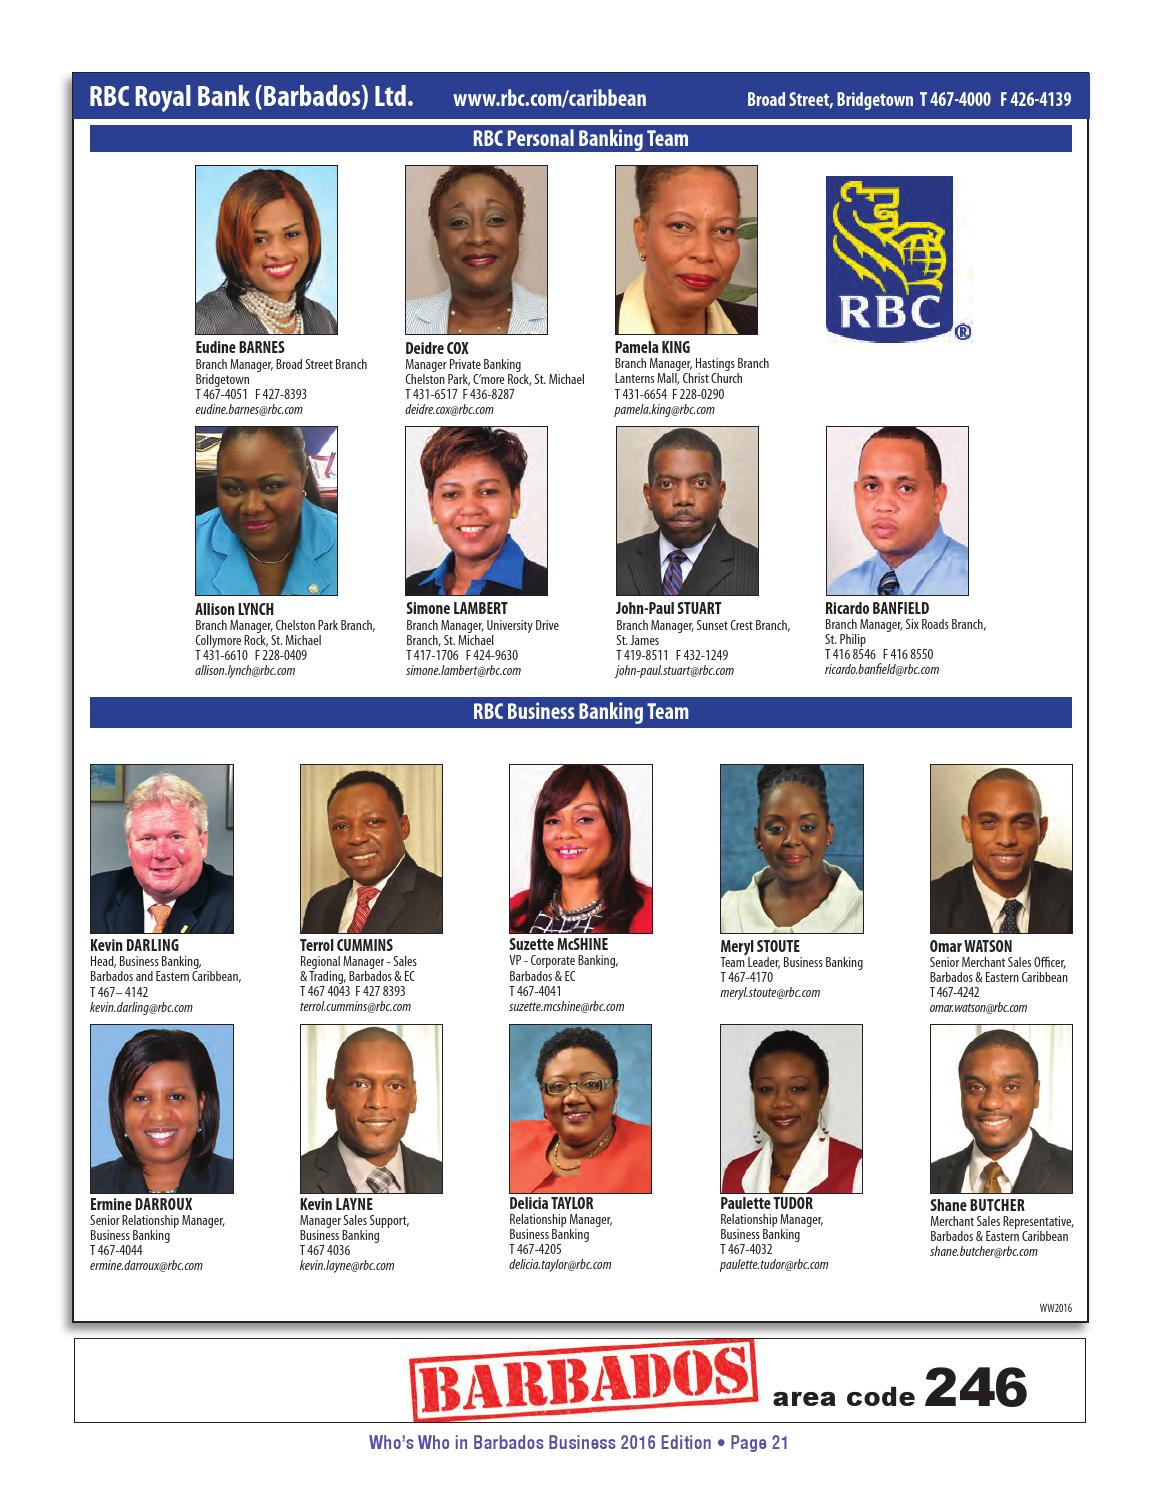 Who's Who in Barbados Business 2016 iEdition by Patrick